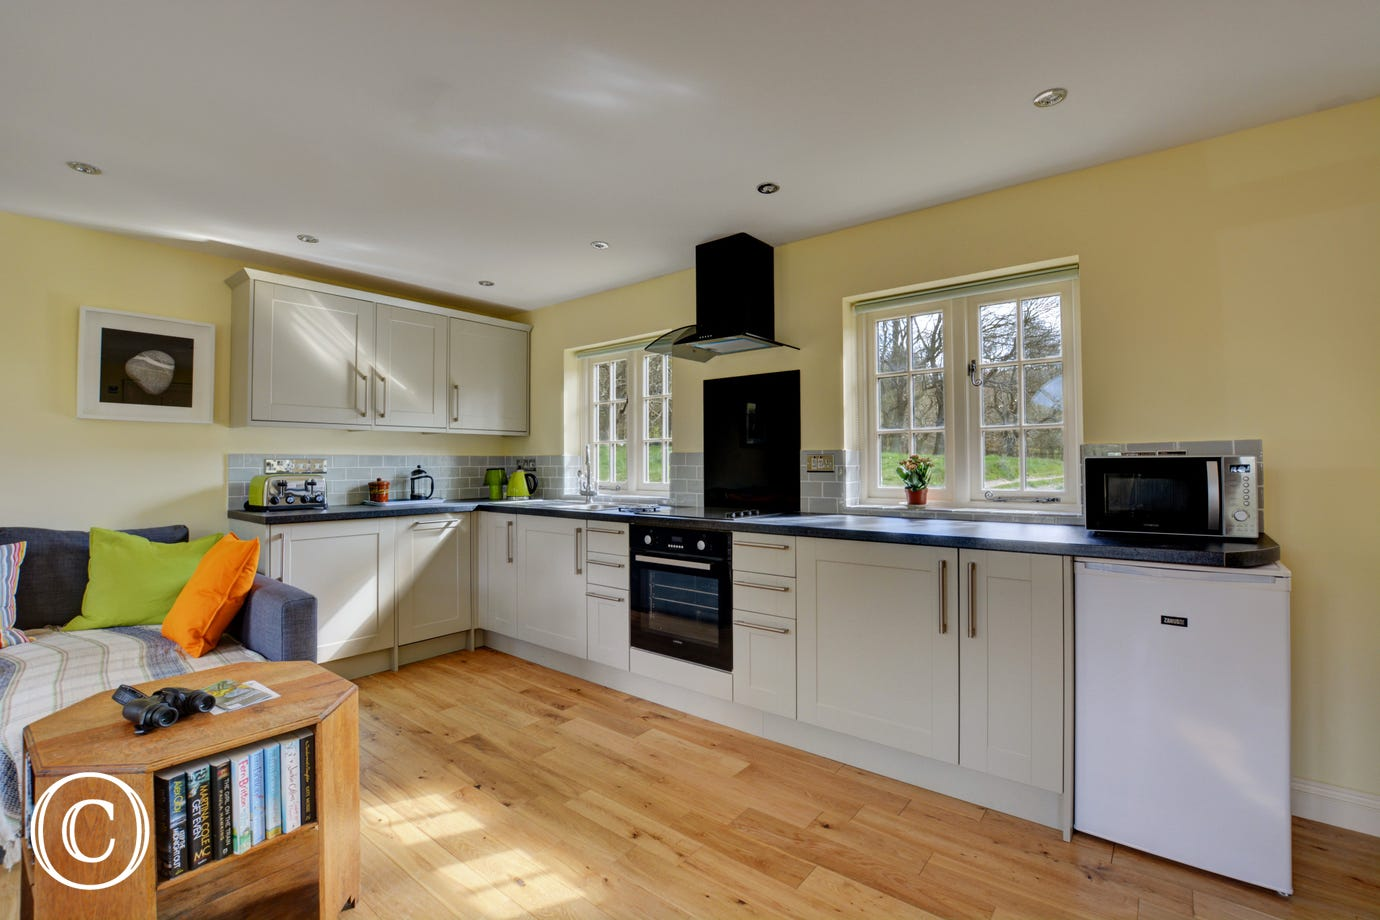 Social open plan kitchen area built in electric oven, electric hob, microwave, fridge with ice box, freezer, dishwasher, washer/dryer